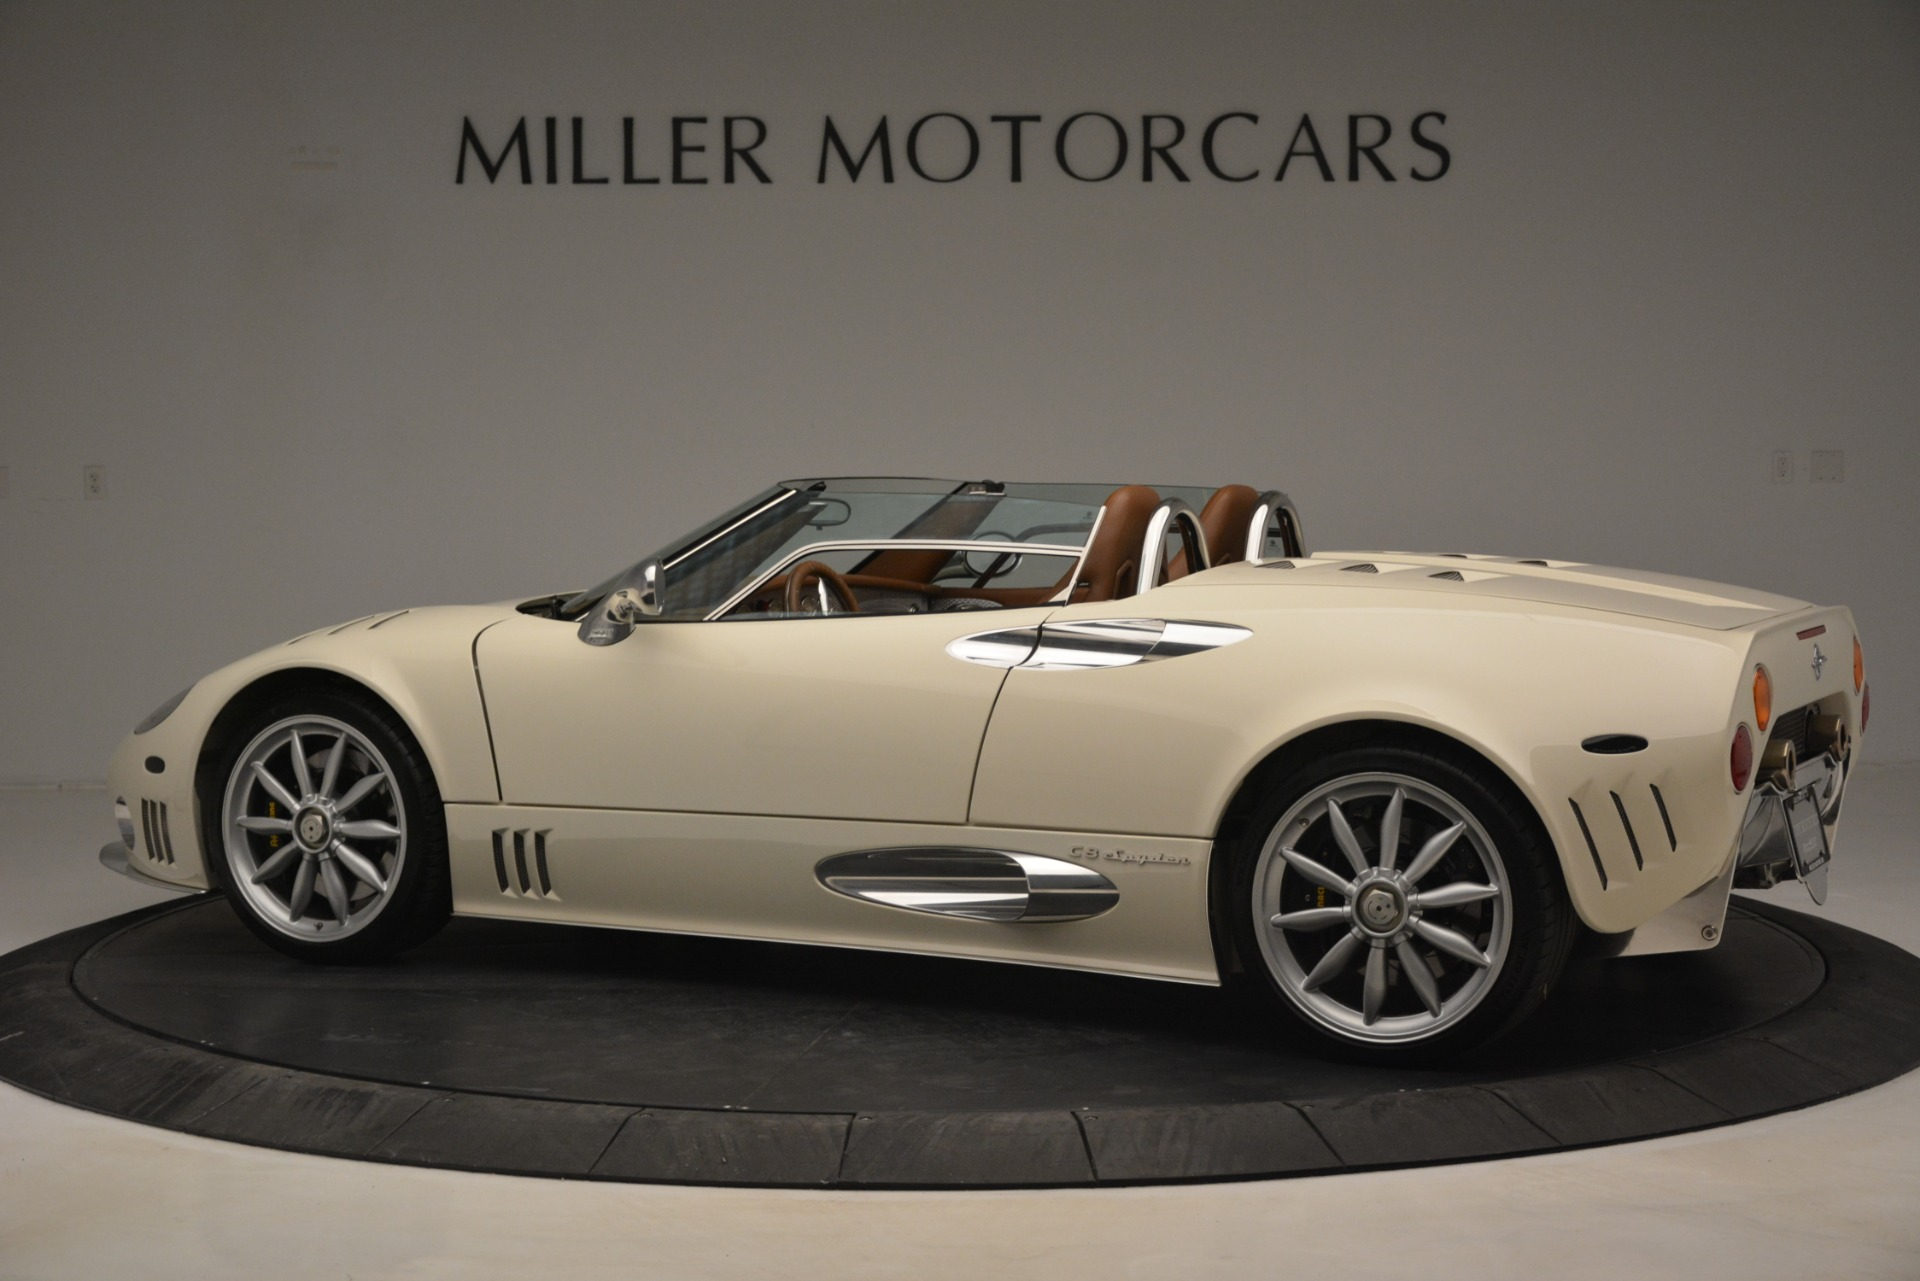 Used 2006 Spyker C8 Spyder  For Sale In Greenwich, CT. Alfa Romeo of Greenwich, 7463 1661_p4